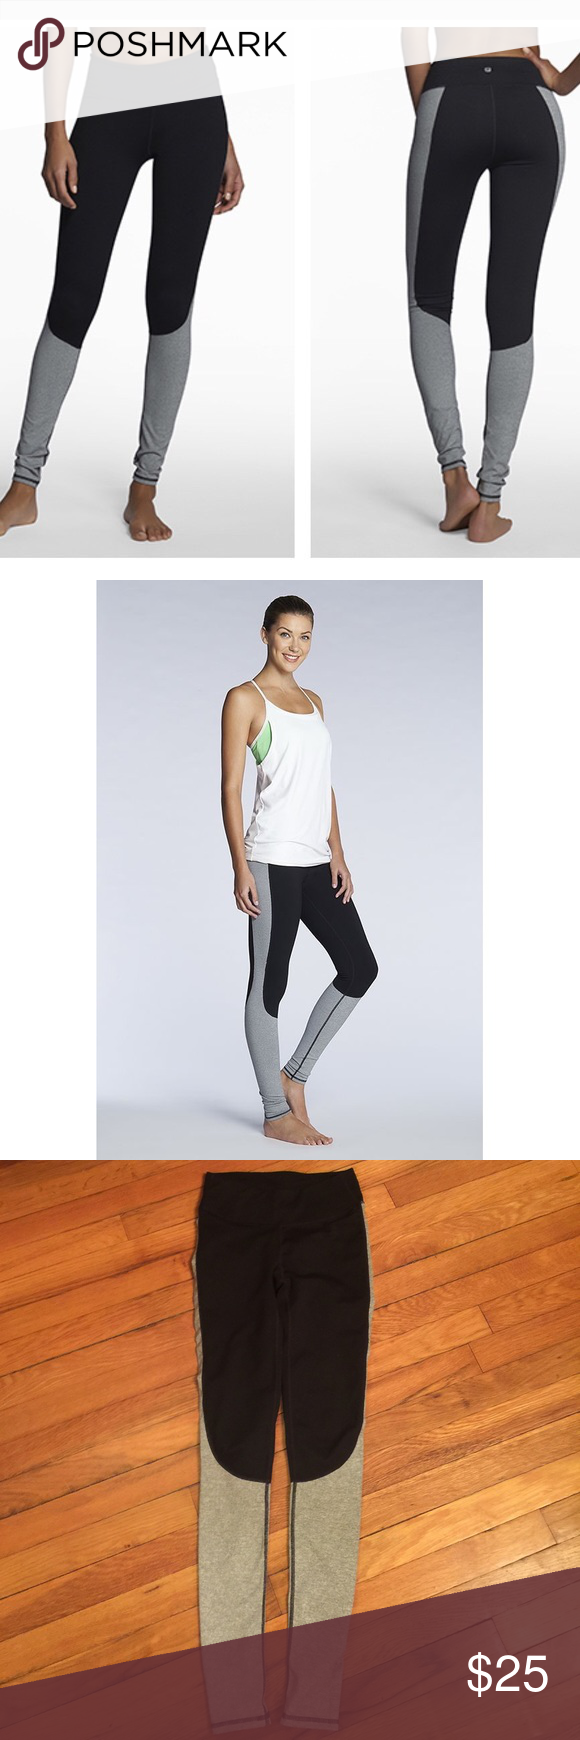 """Fabletics Sydney leggings Excellent, like new condition. This is sold out online, features maximum compression, mid rise and 29""""inseam. Fabletics Pants Leggings"""